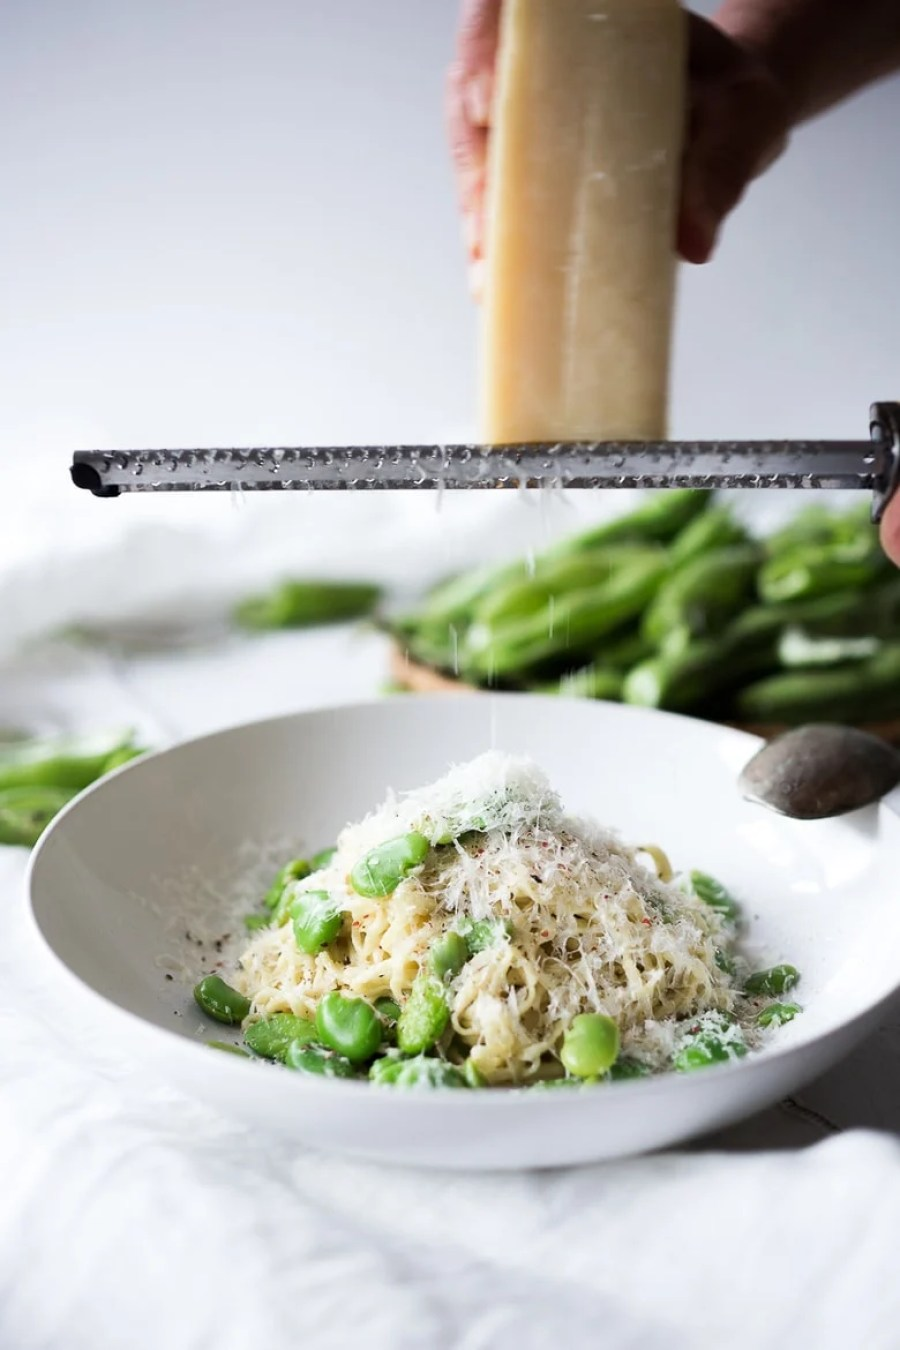 A simple delicious recipe for Cacio e Pepe with Fava Beans (Pasta with fava beans, cheese and pepper) is so tasty you will want to make it over and over. No fava beans? Substitute peas or edamame! | www.feastingathome.com